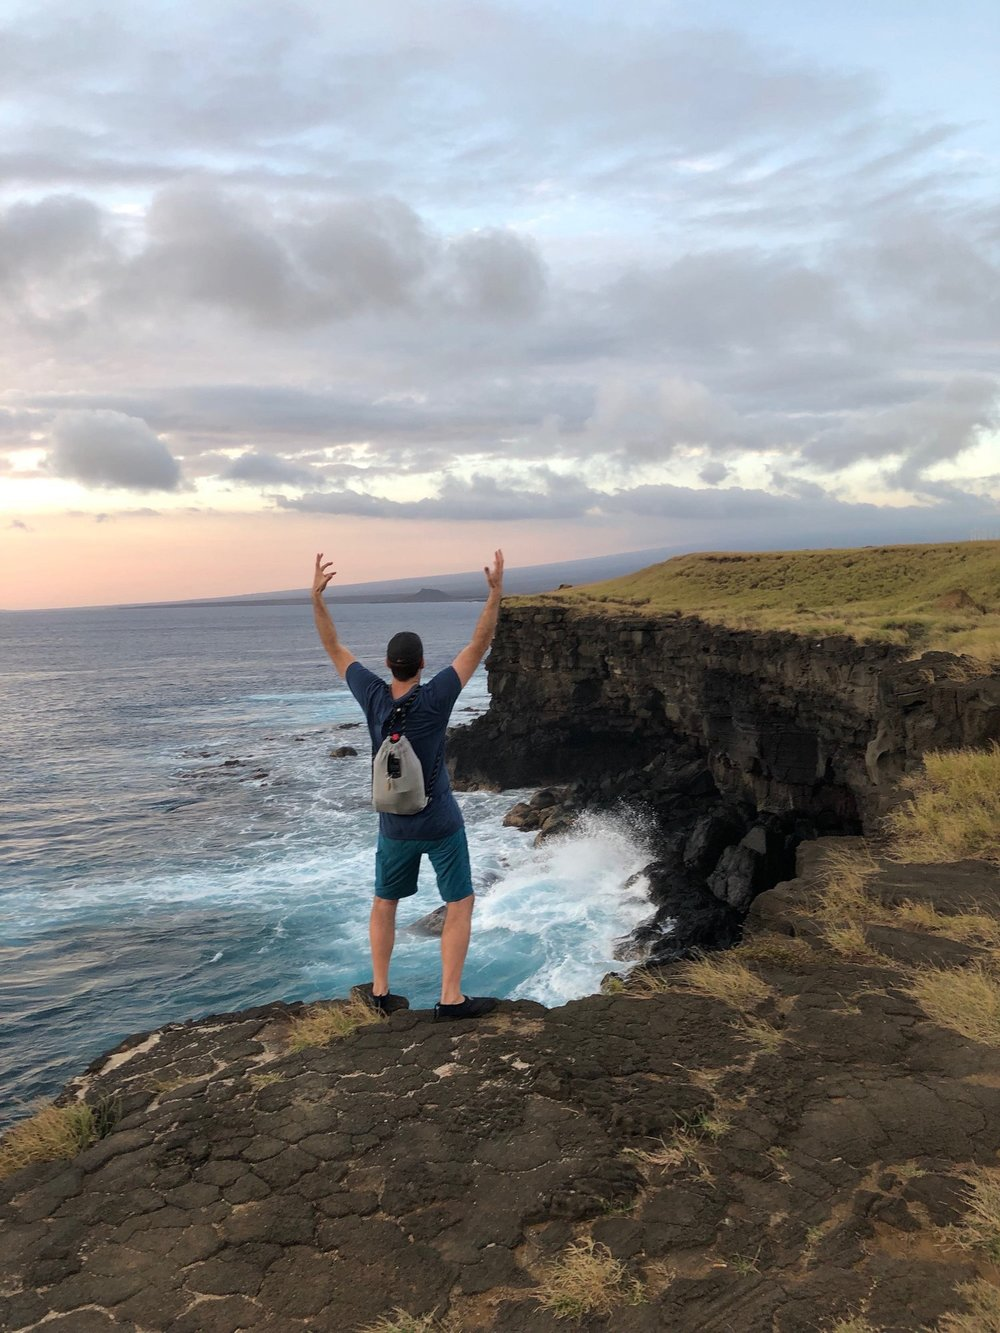 Man with hands up at South Point cliffs, Hawaii.